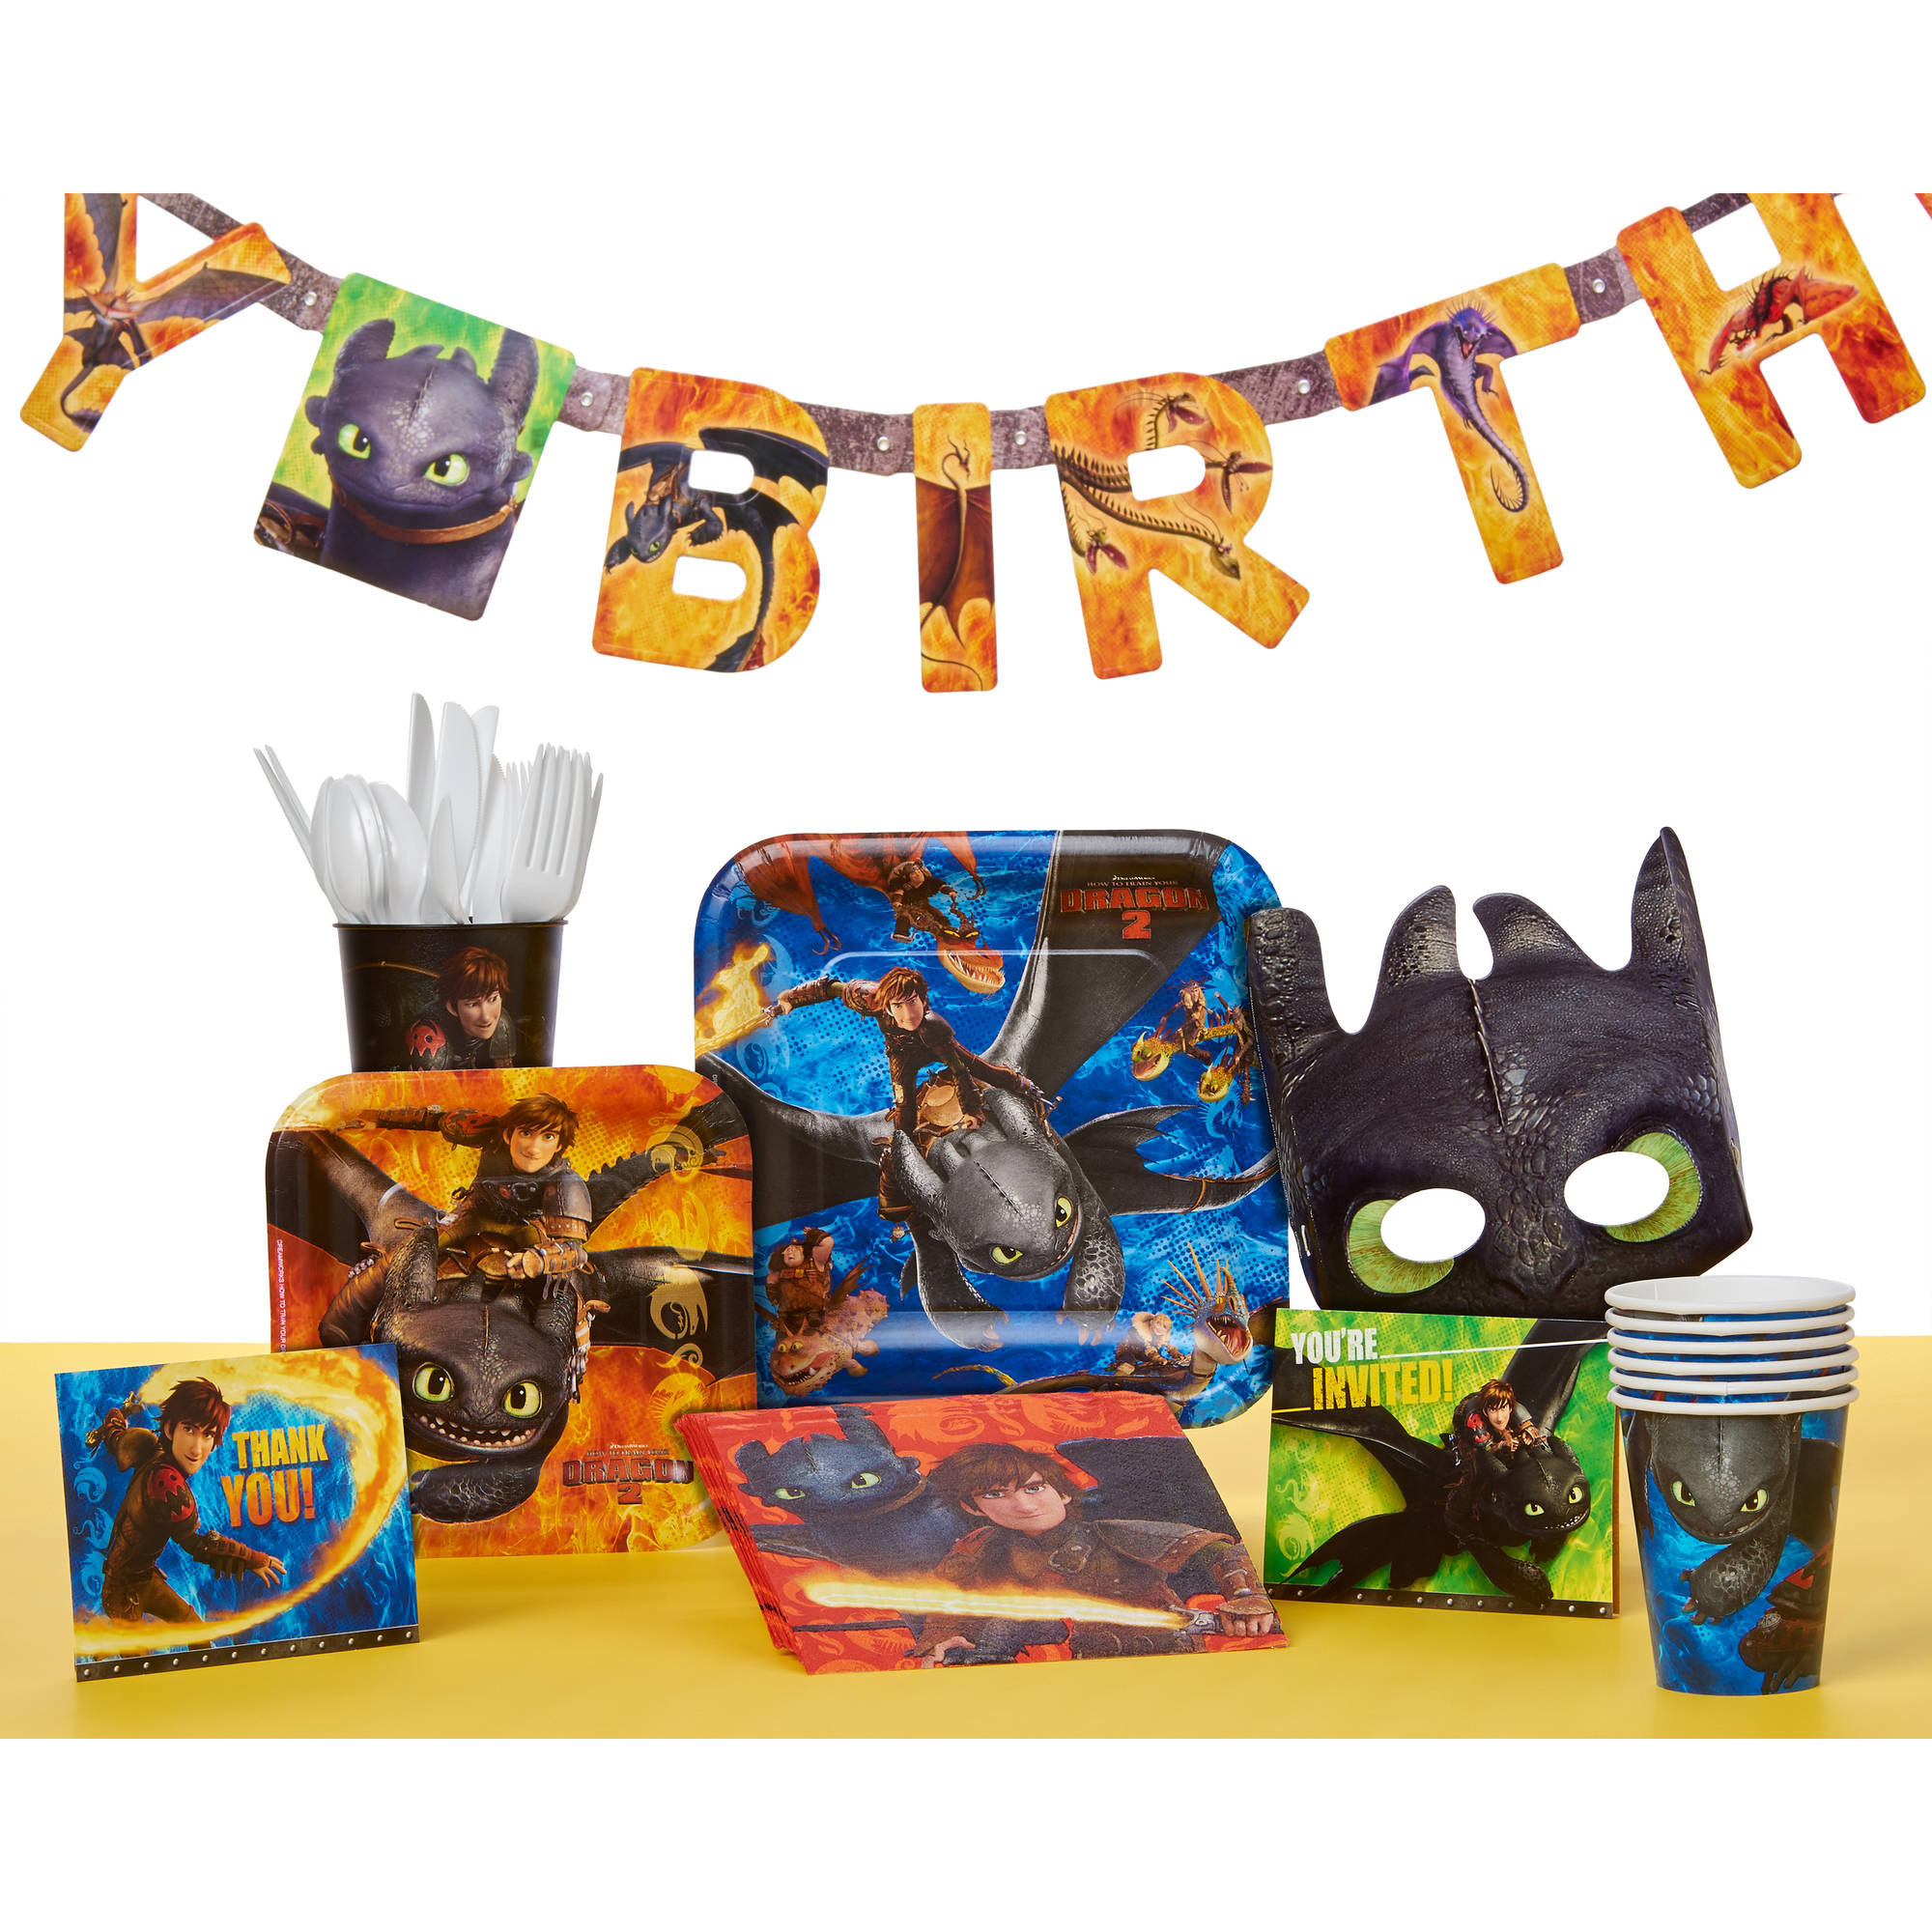 How To Train Your Dragon Birthday Party Banner 7 59 Ft Walmart Com